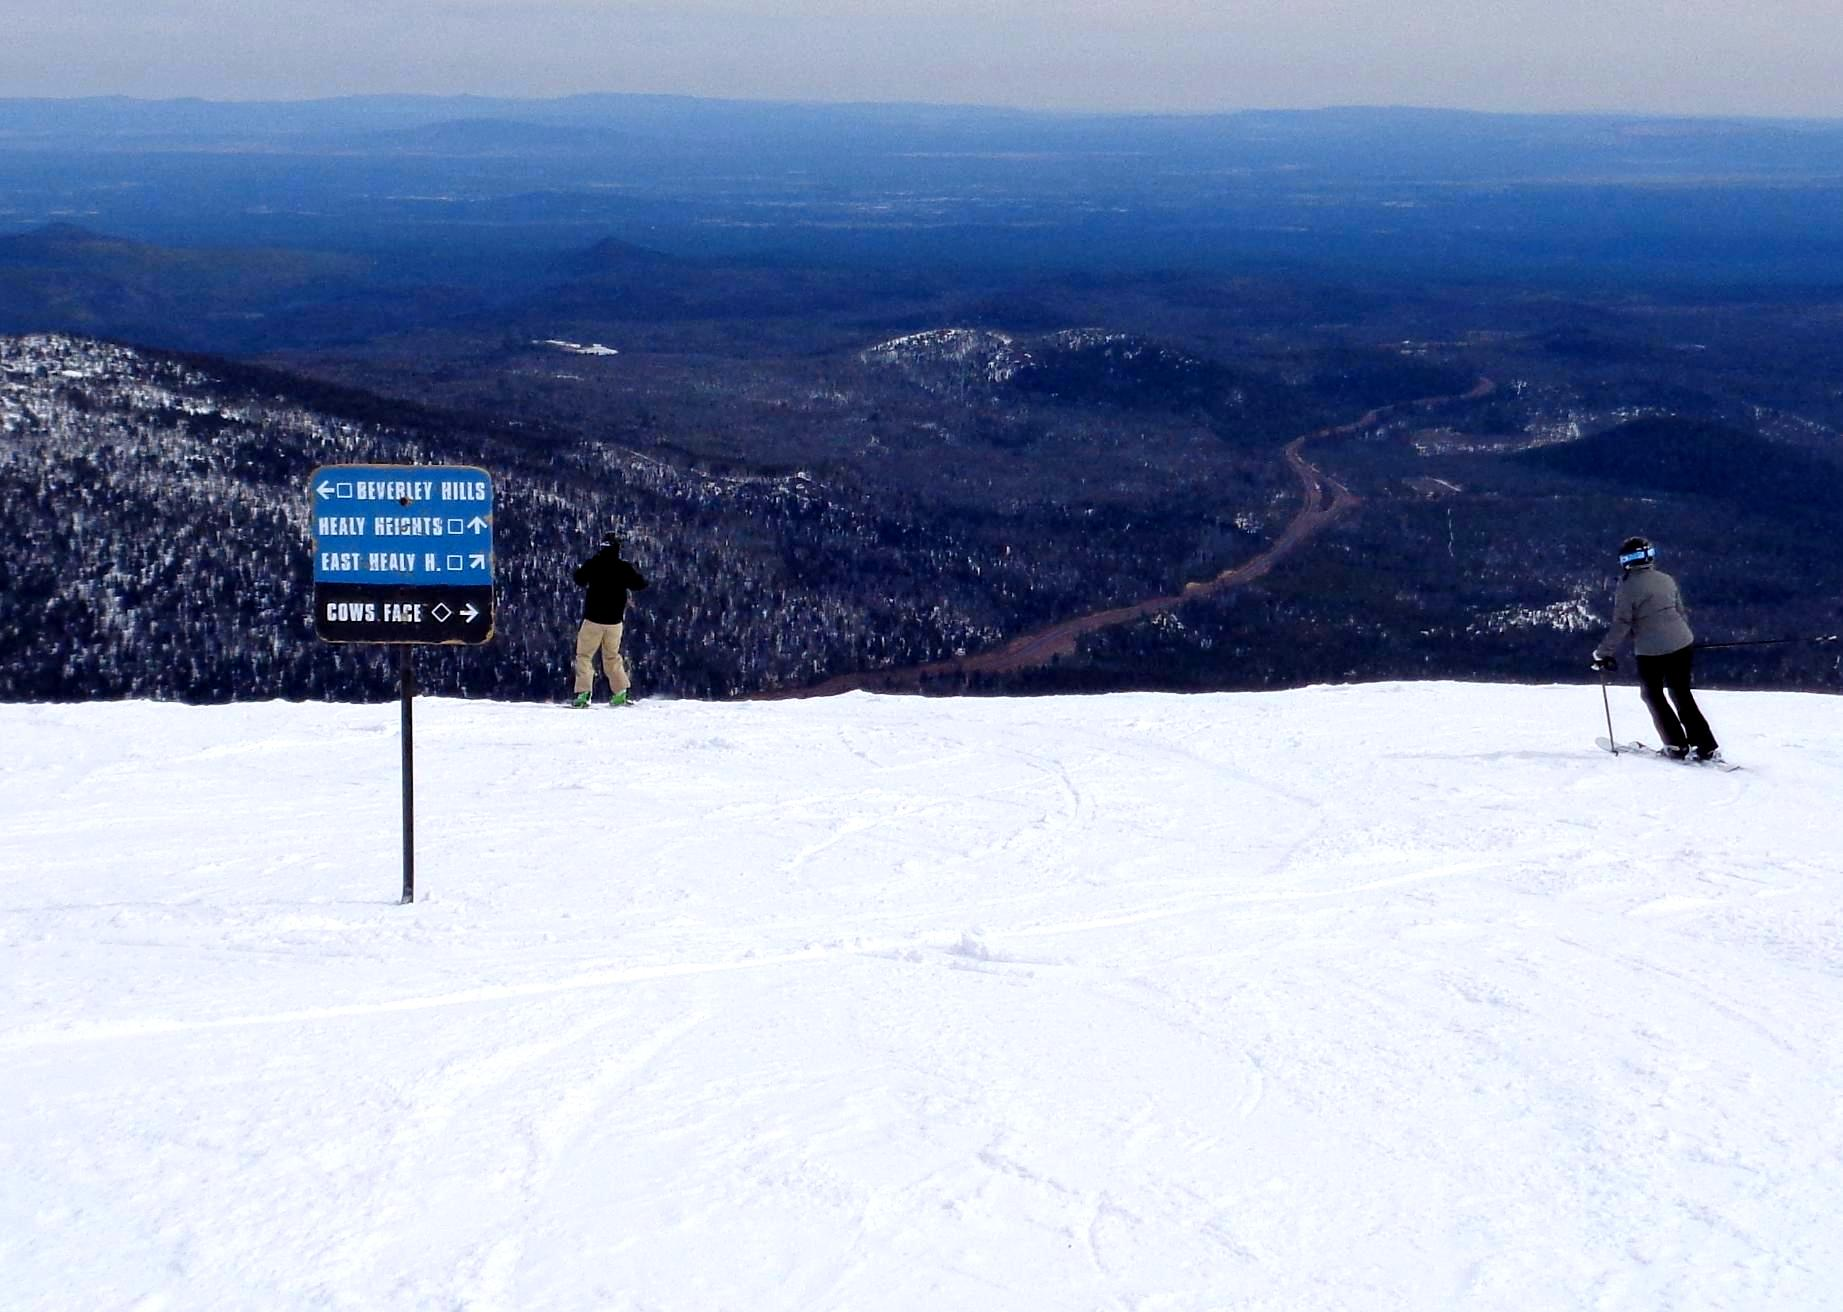 Trails at the Top of Summit